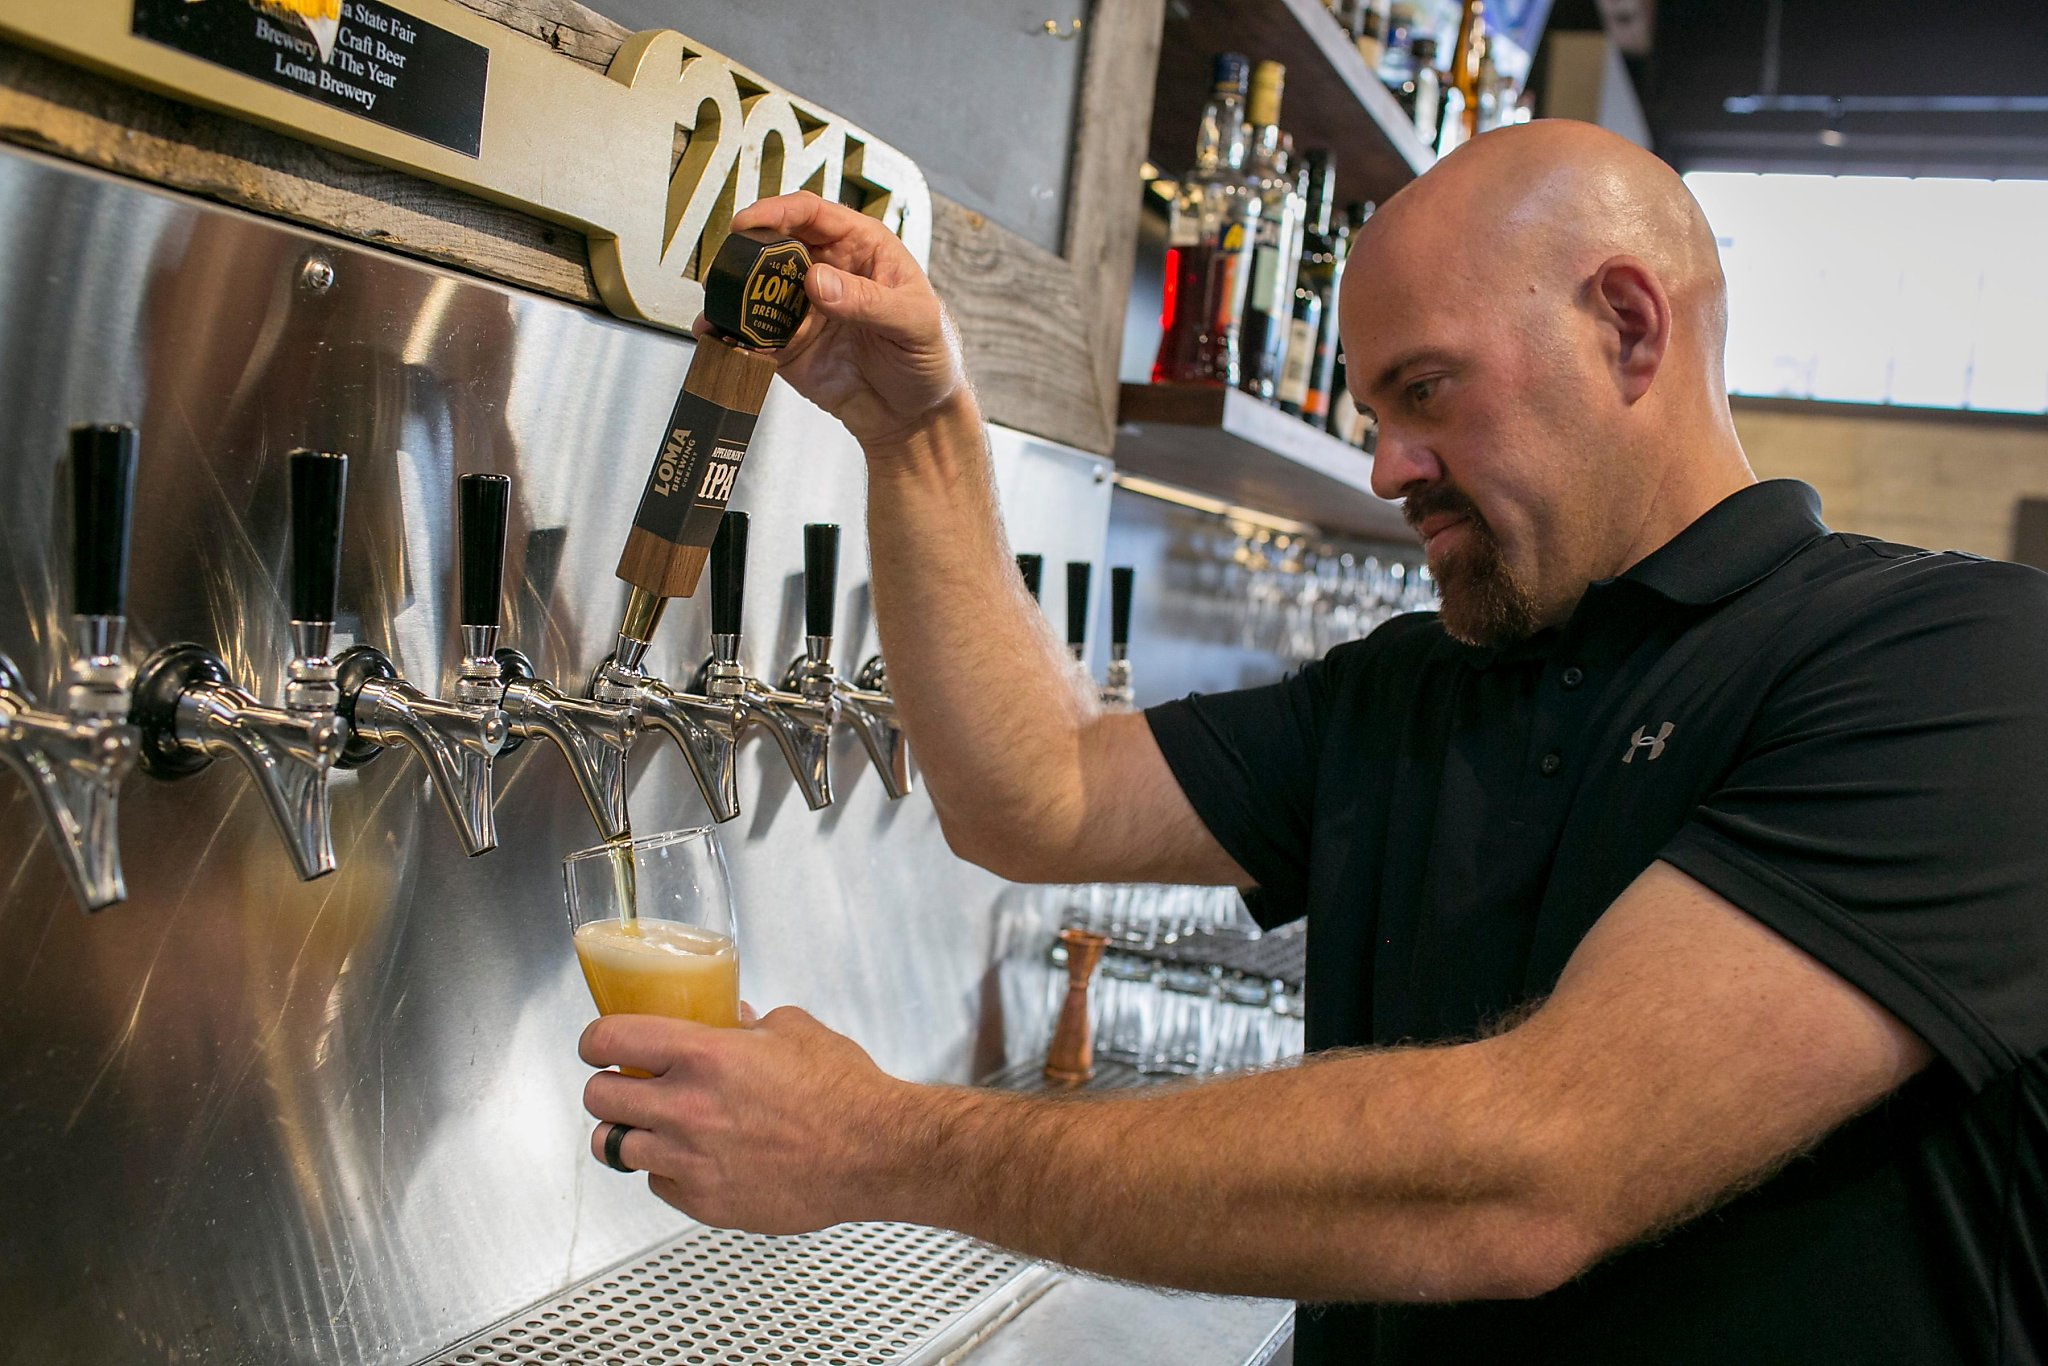 Former baseball player Kevin Youkilis has another hit with beer  SFChroniclecom